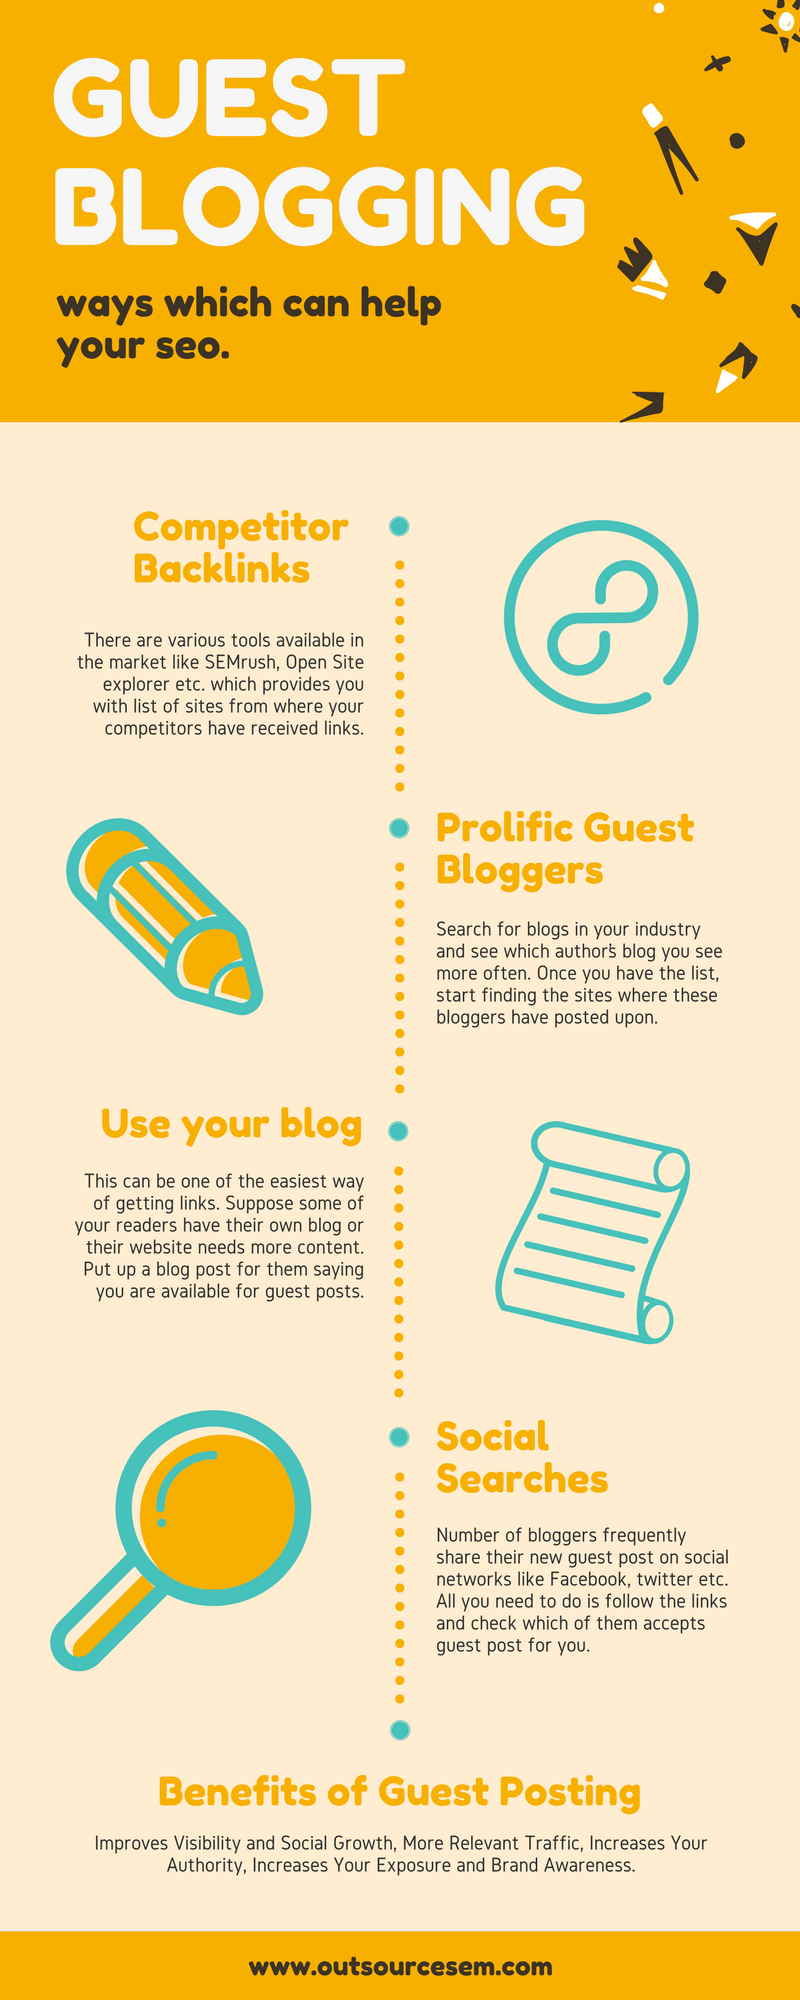 guest blogging can help you